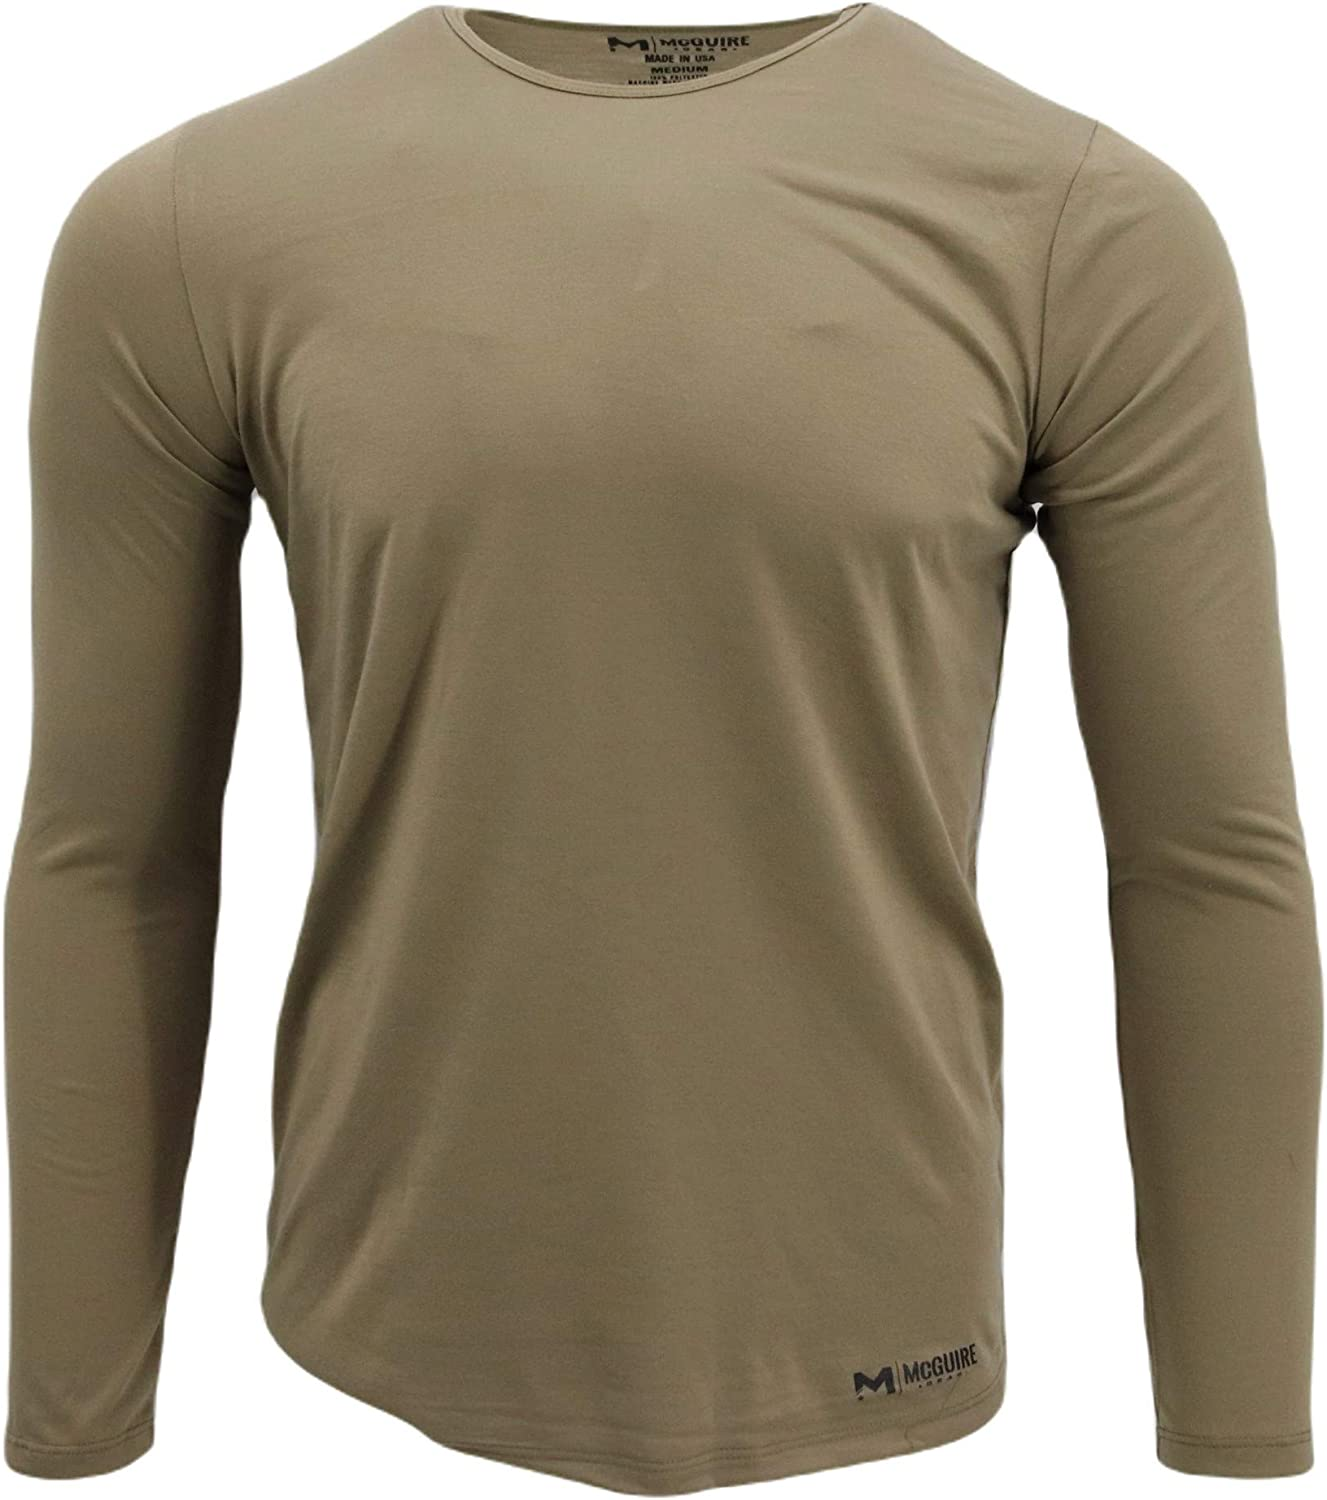 Polyester Thermal Top, Base Layer, Moisture Wicking, Made in USA, Tan 499